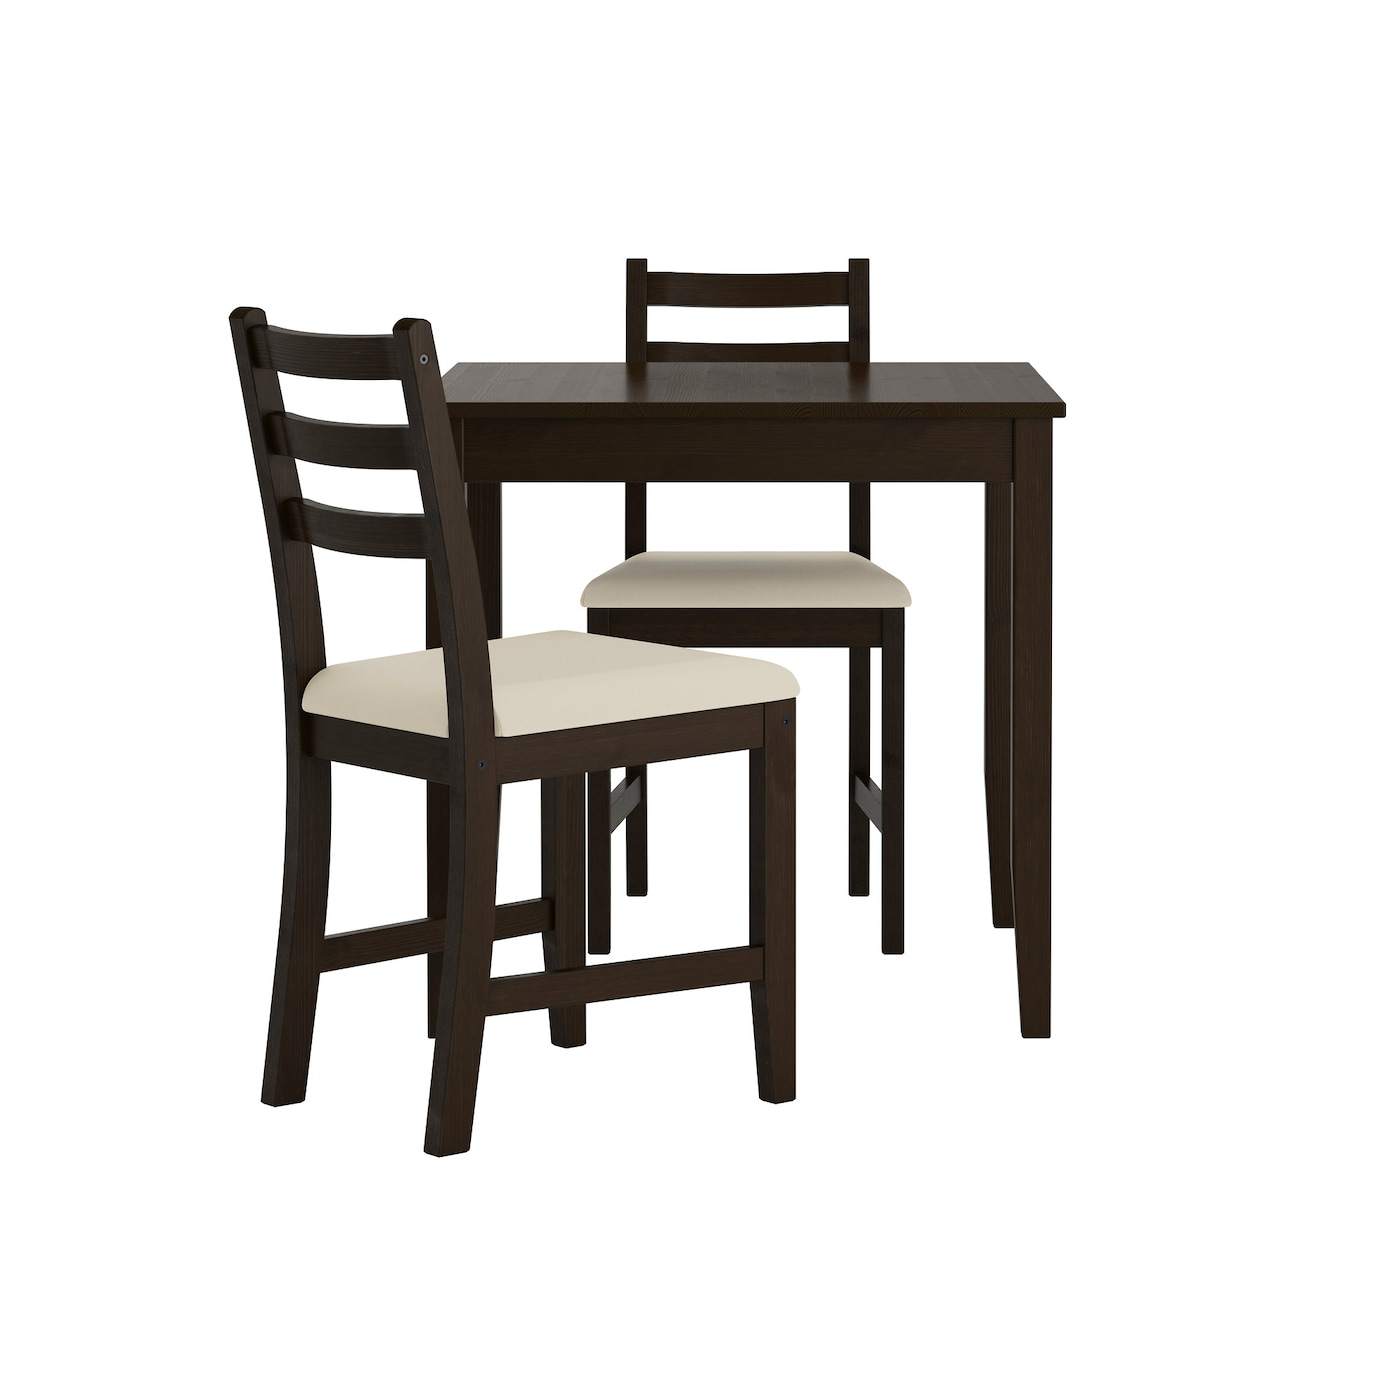 Dining table sets dining room sets ikea for Small black dining table and chairs